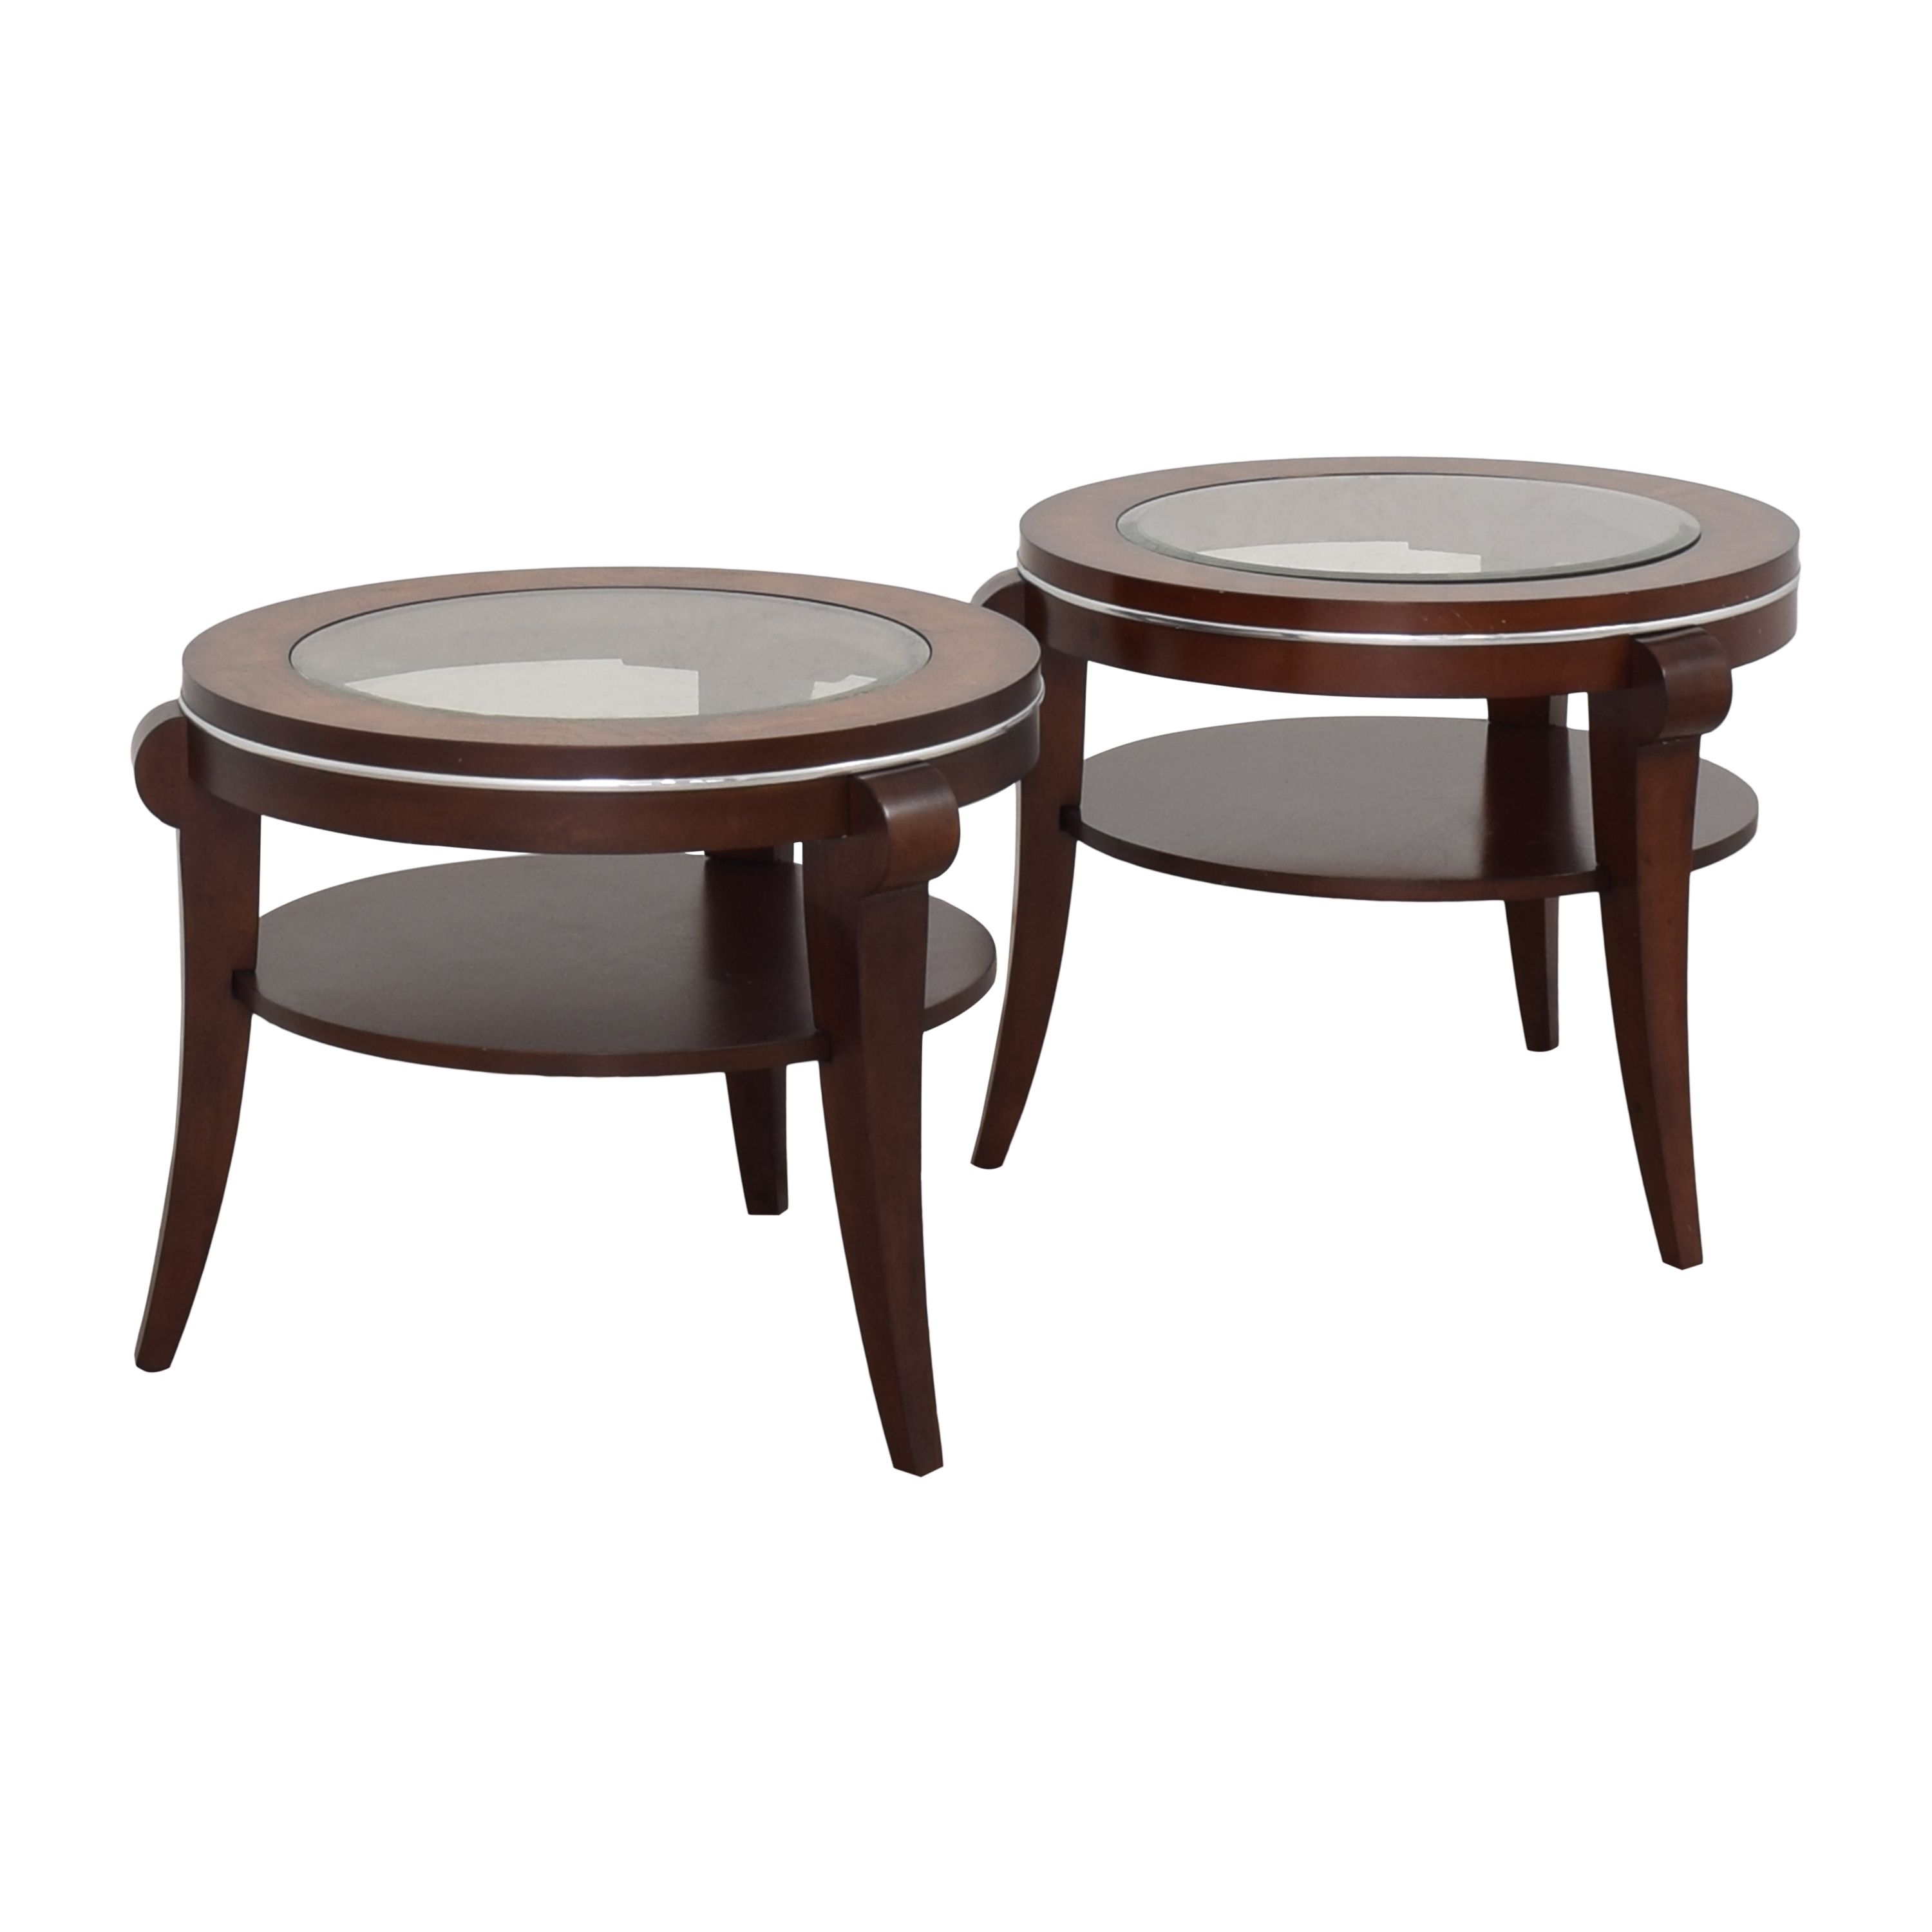 Raymour & Flanigan Raymour & Flanigan Round End Tables coupon